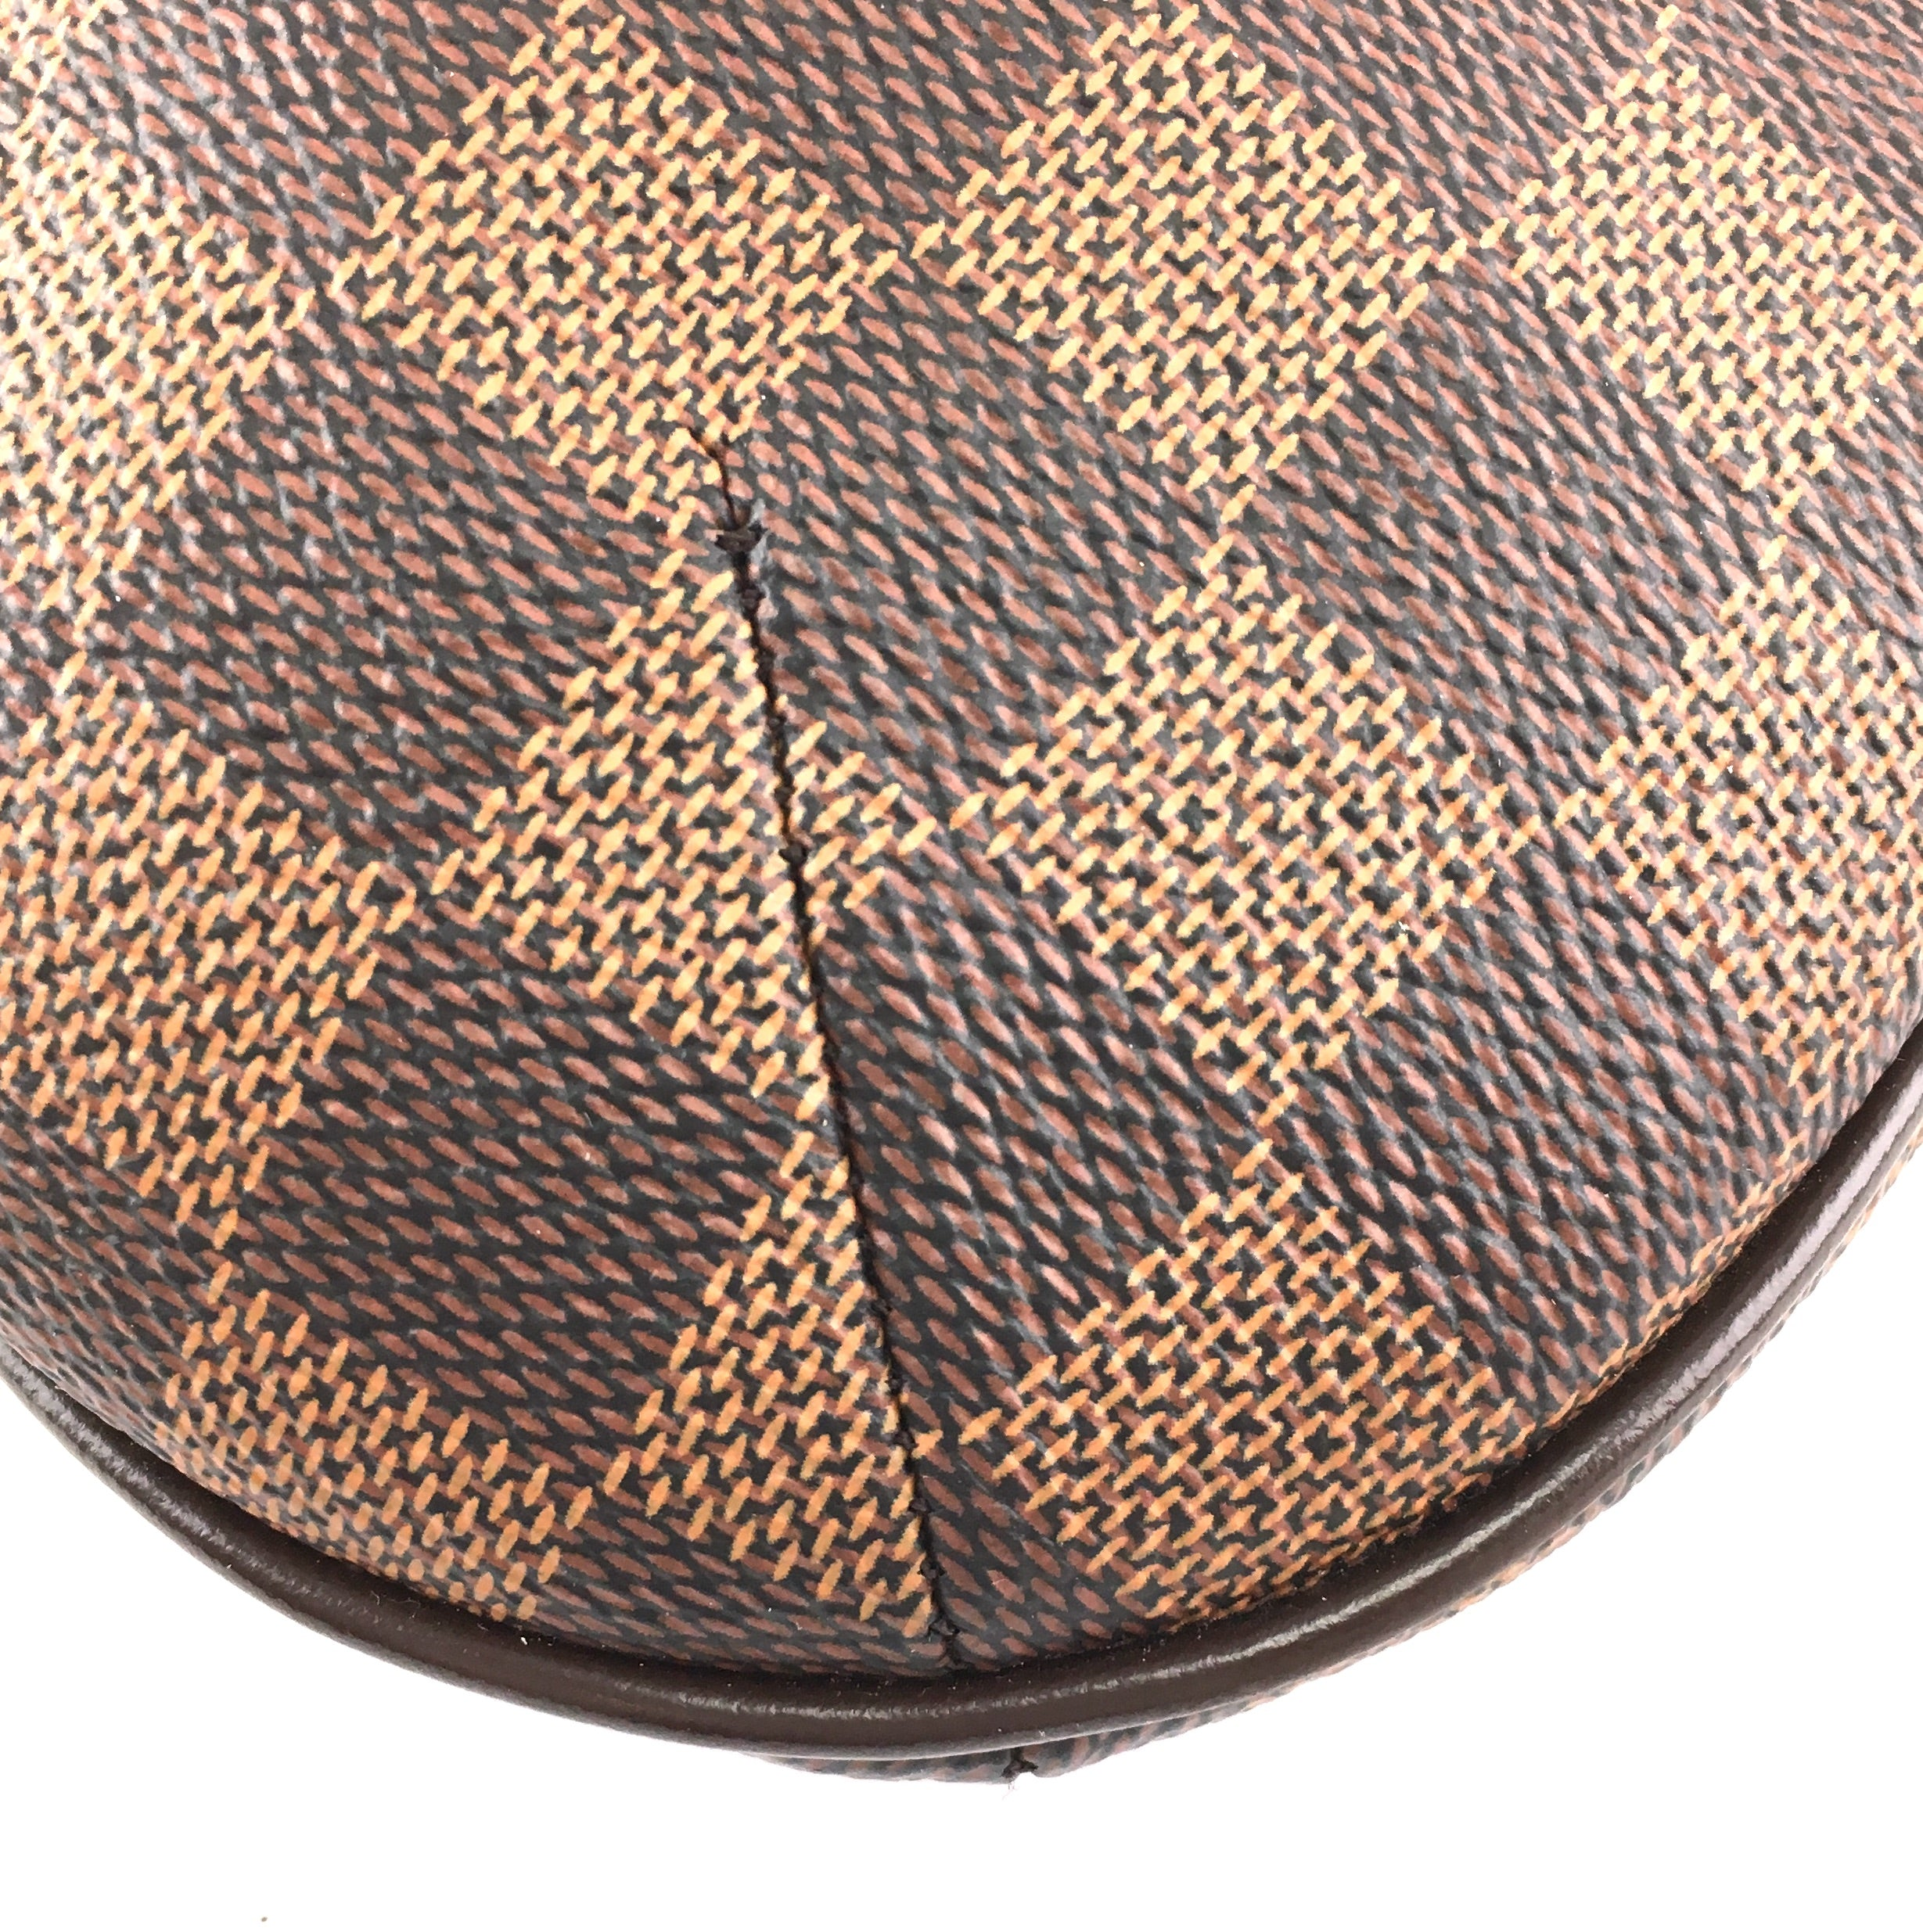 Louis Vuitton Bloomsbury PM Damier Ébène Canvas